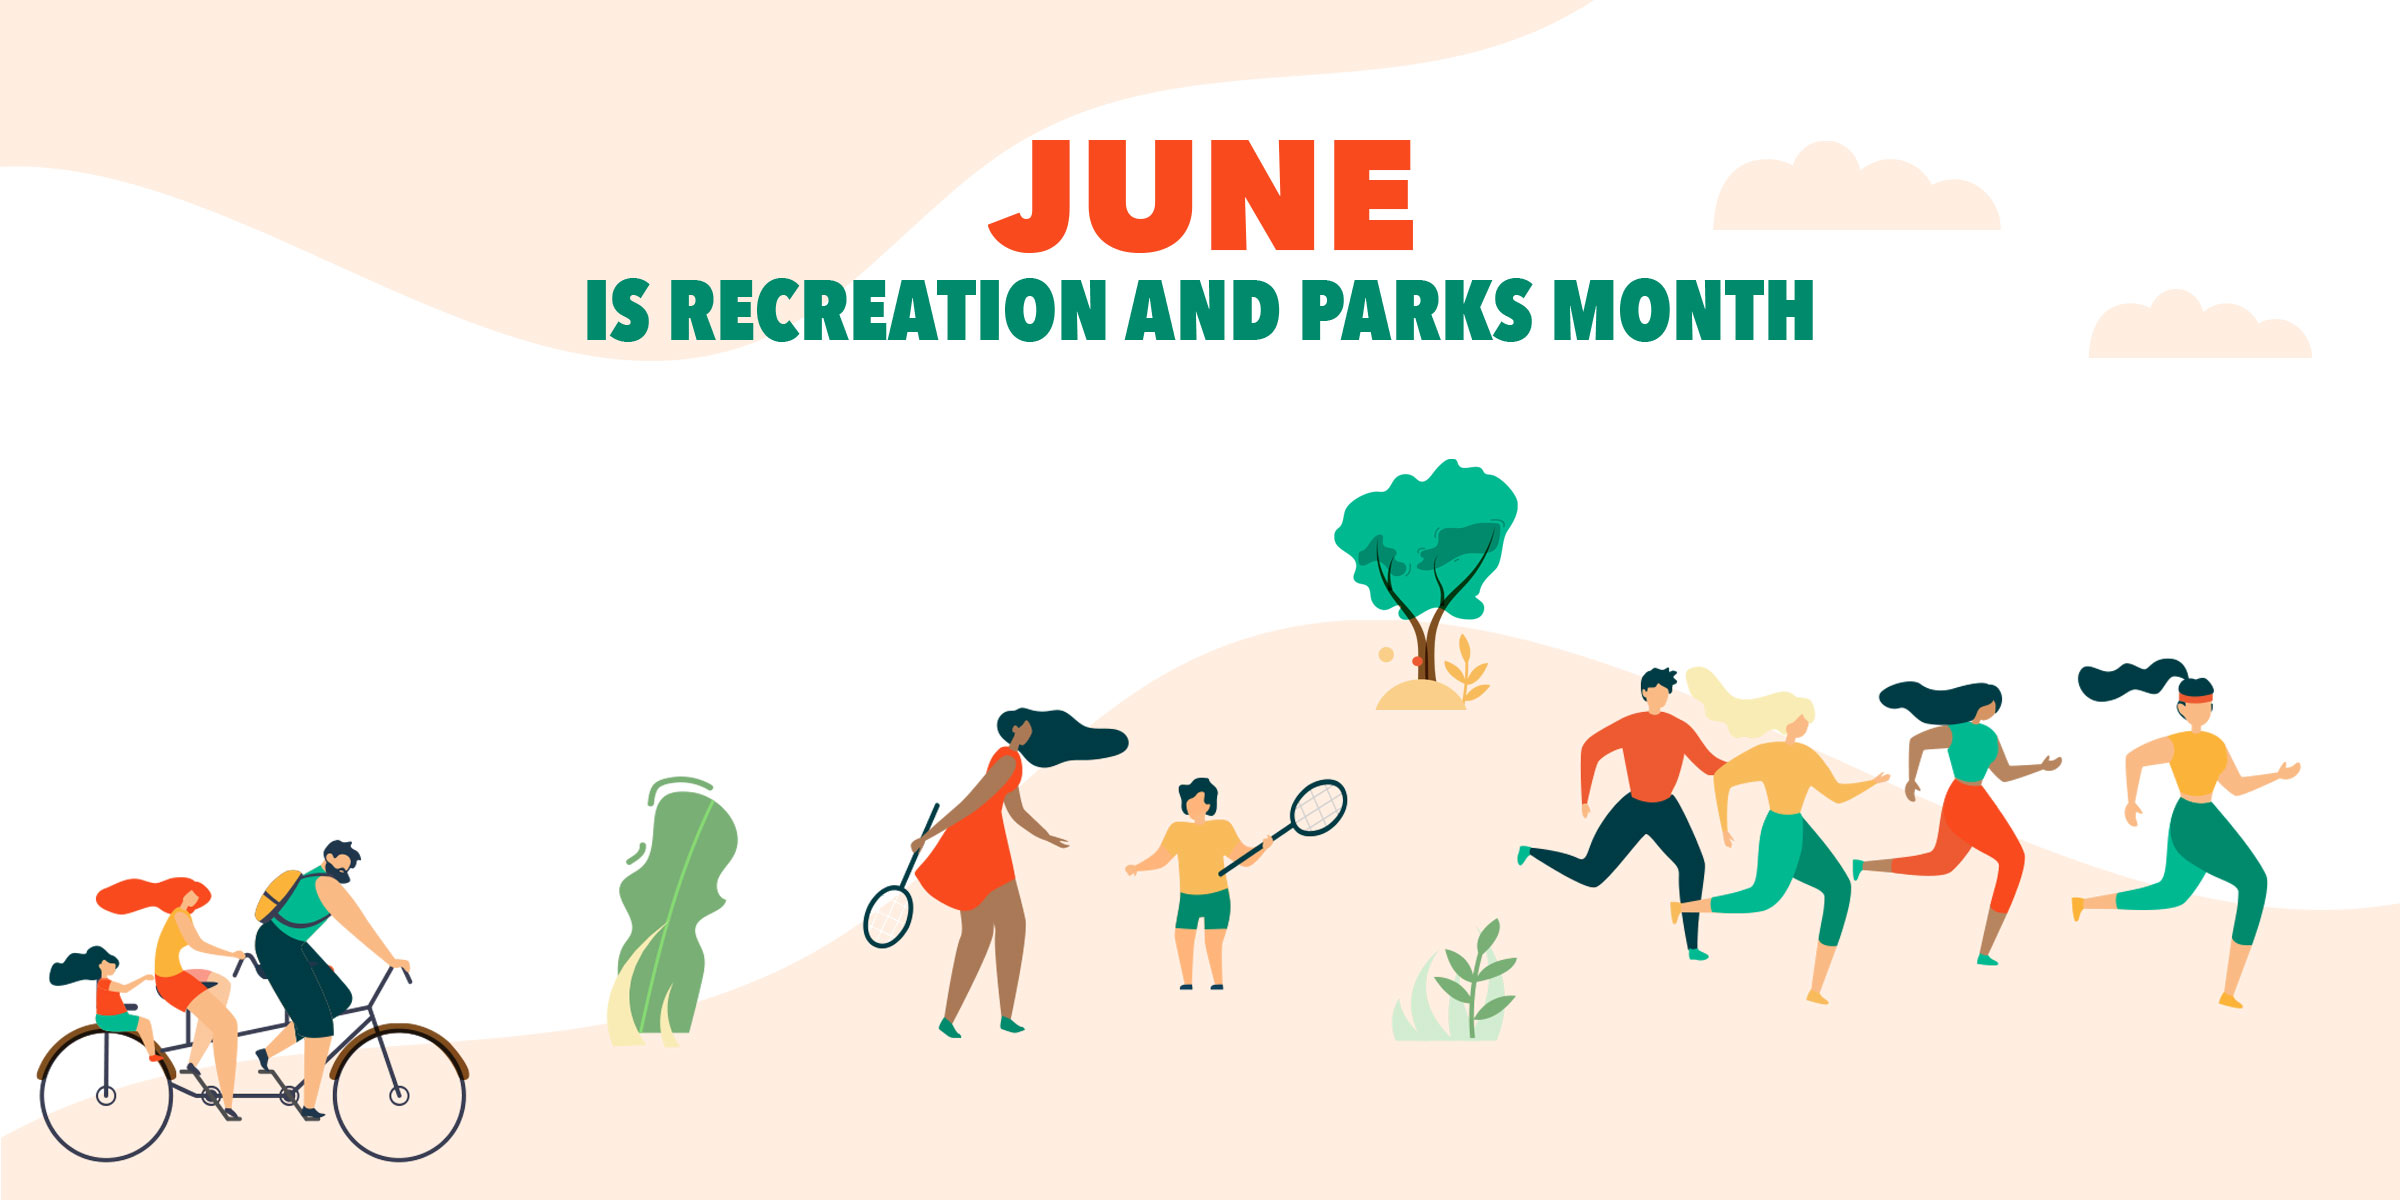 Rec and Parks Month